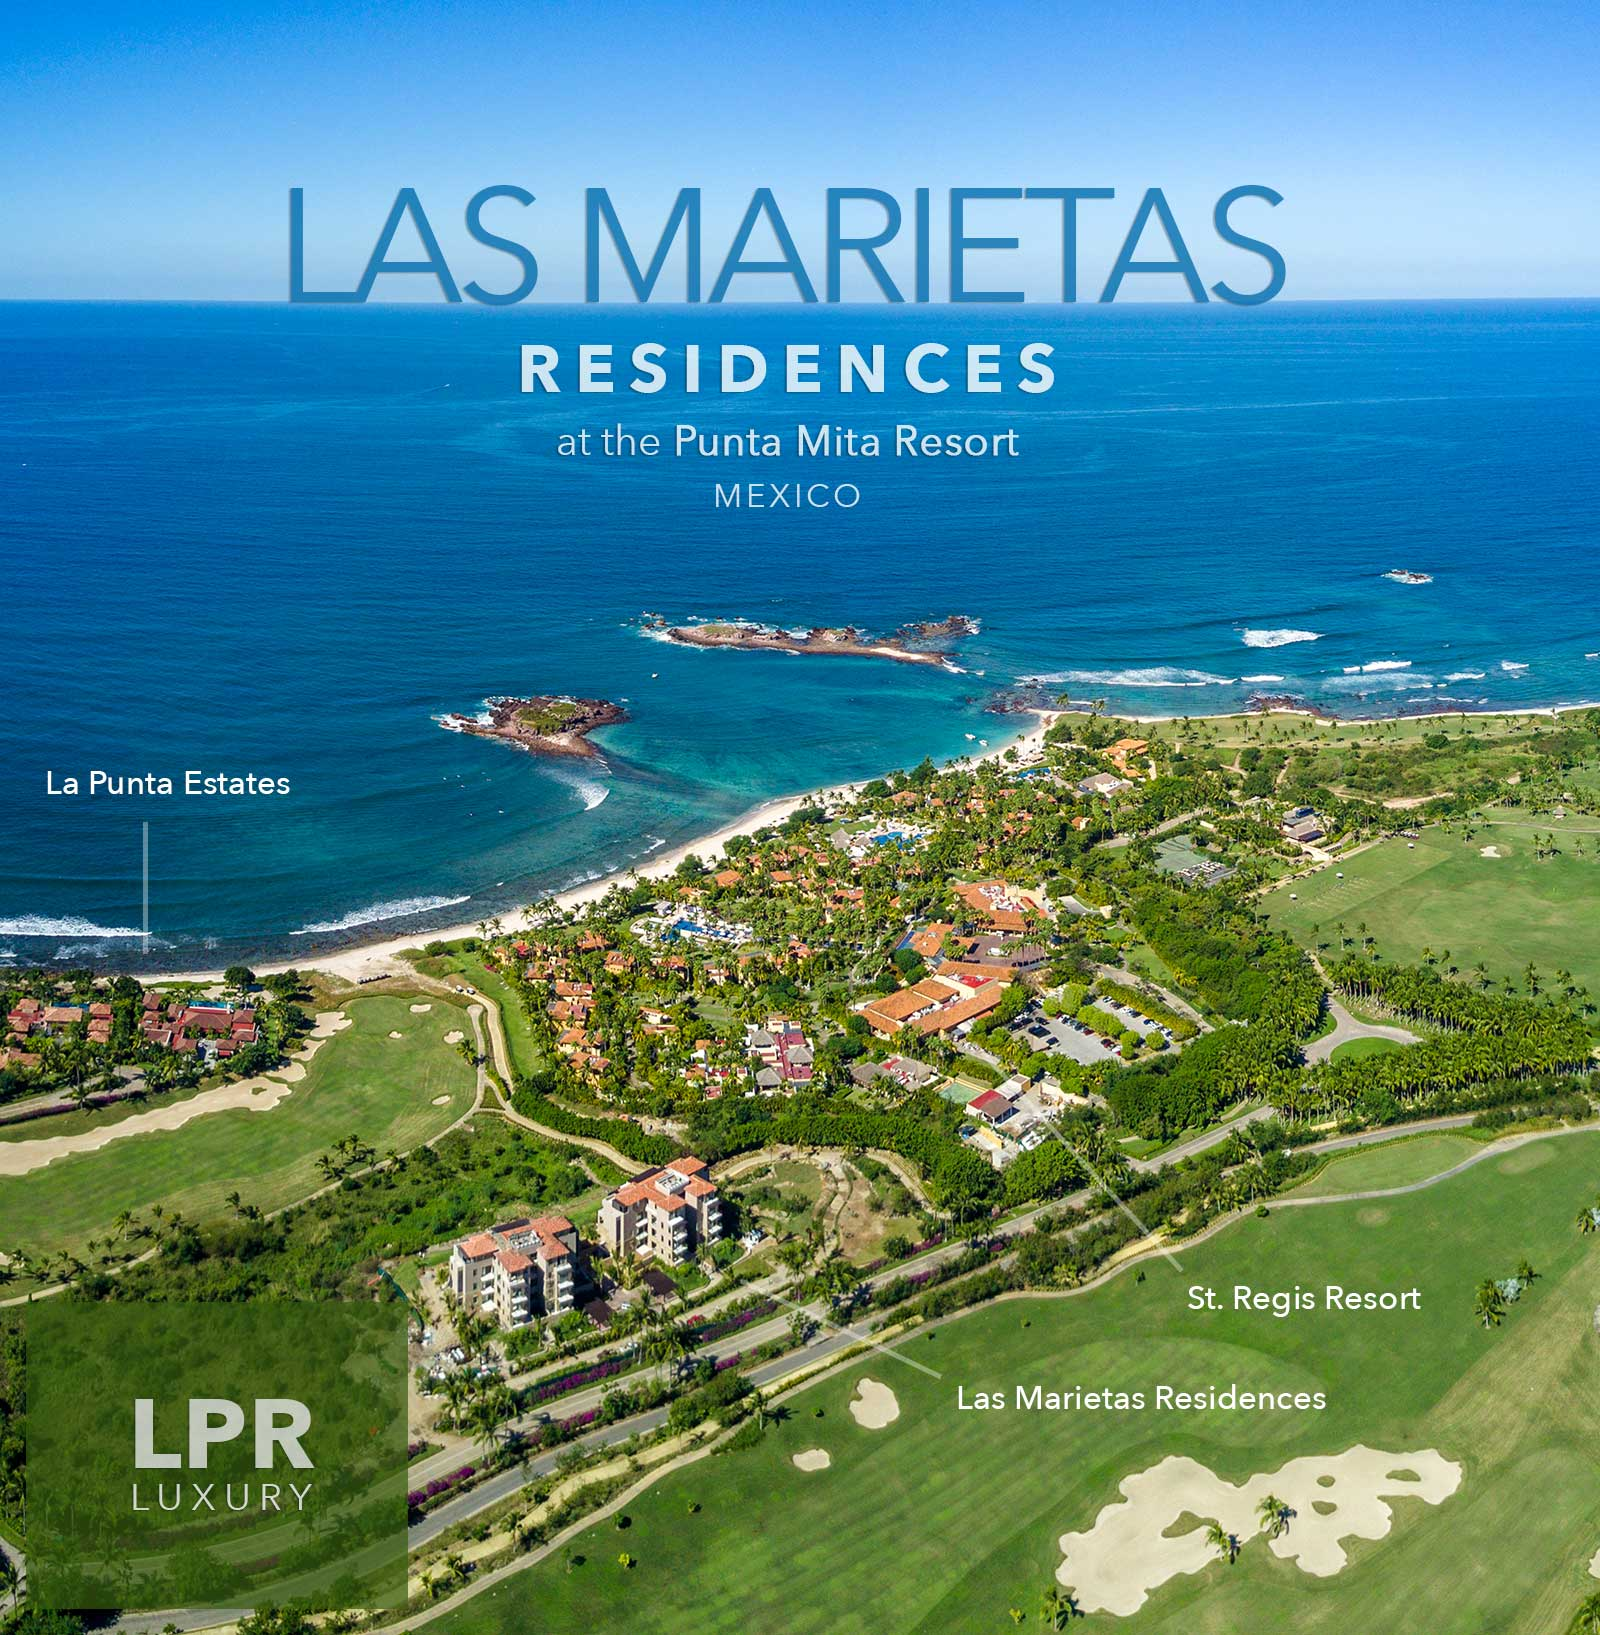 Las Marietas condos - Luxury Punta Mita Resort real estate for sale and rent